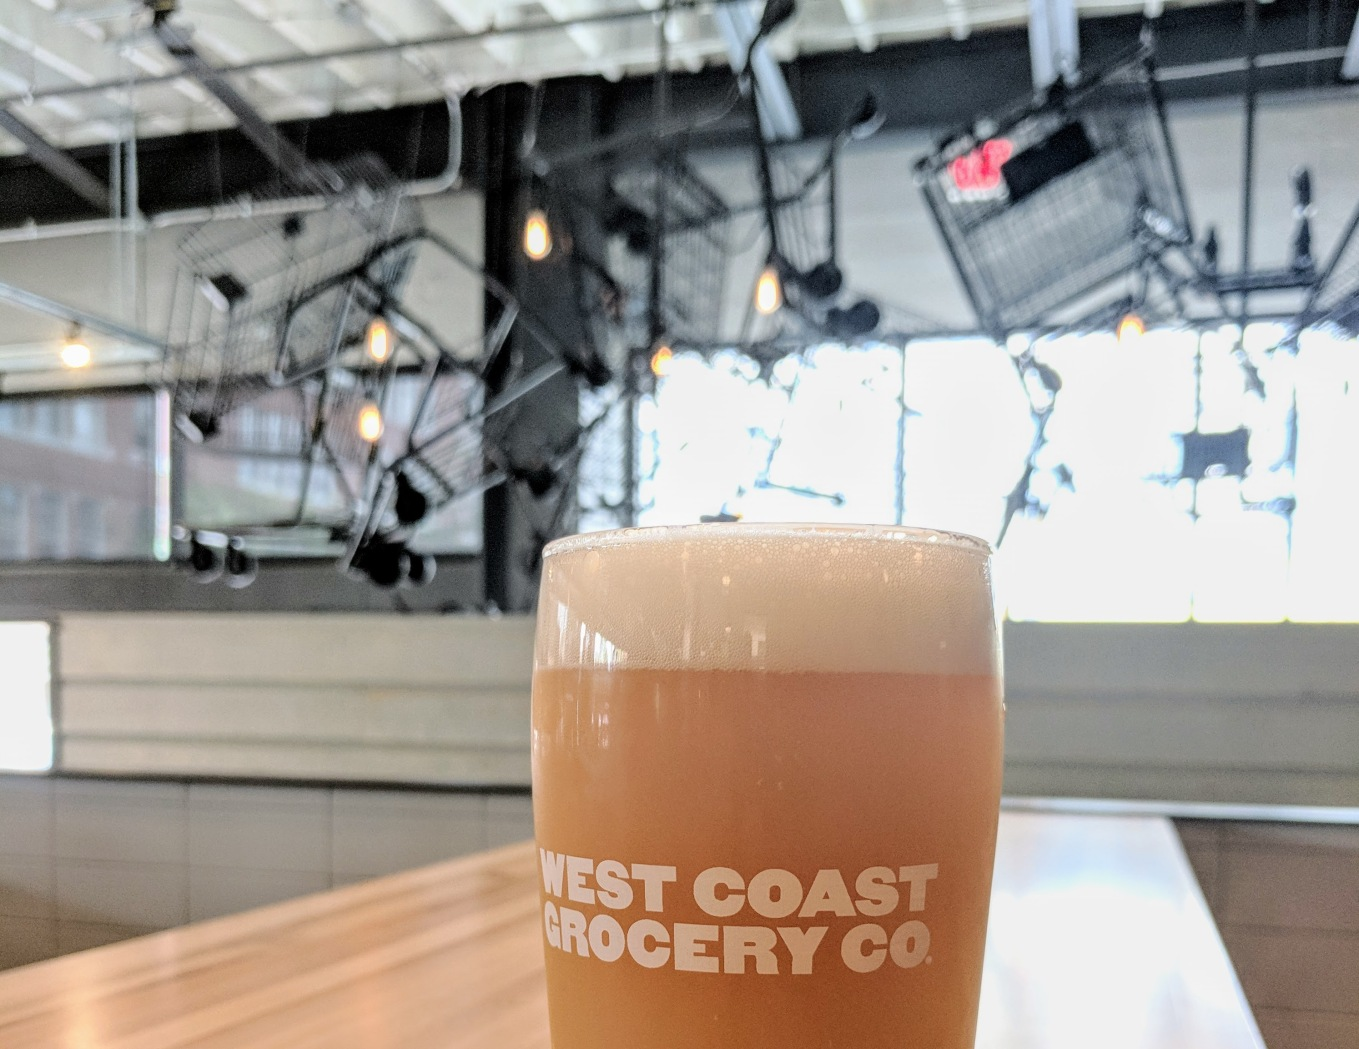 West Coast Grocery Co Shopping Carts Hazy IPA Fuzzy Balls